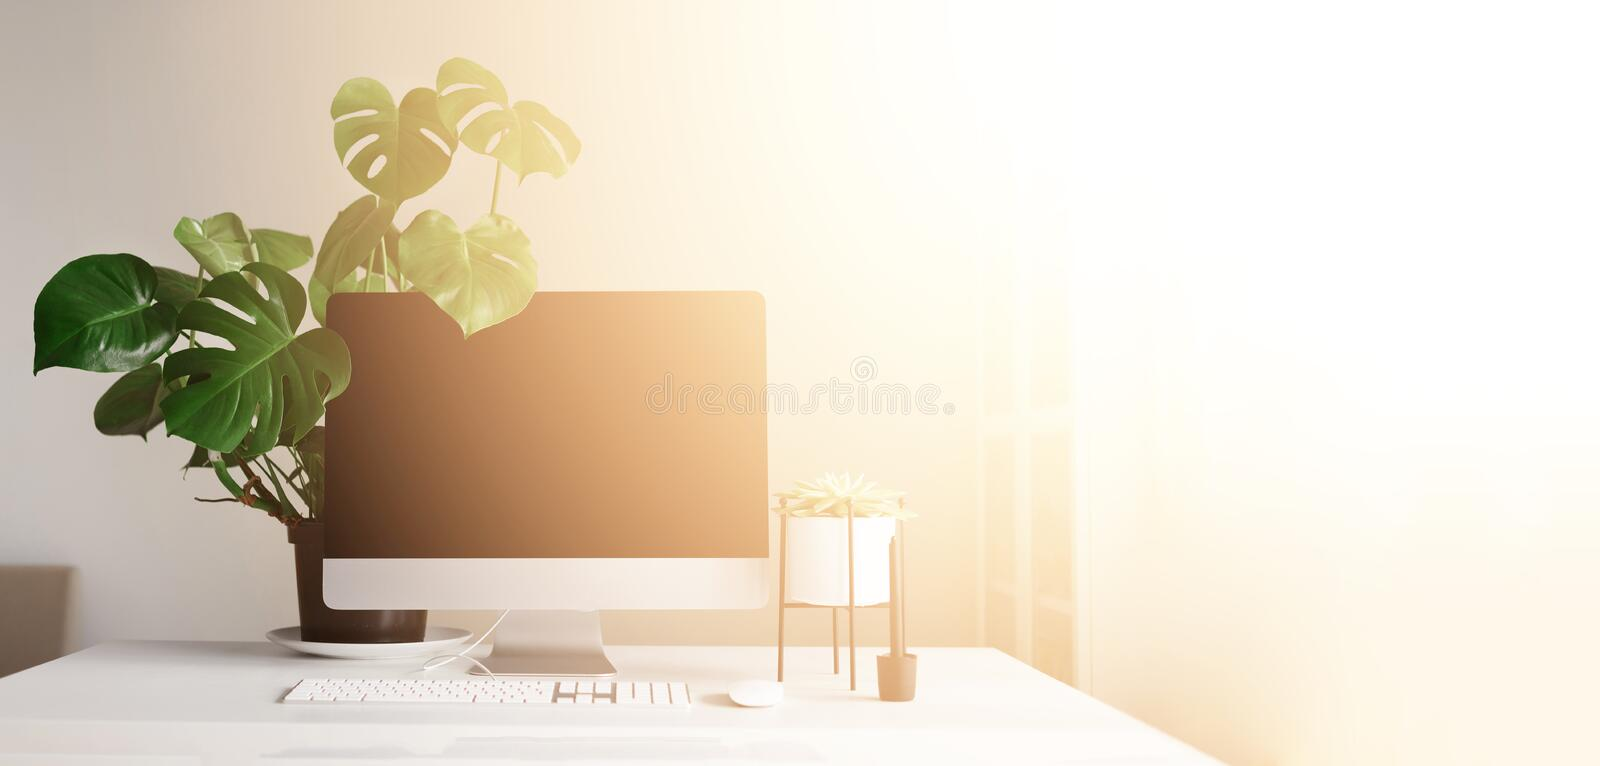 Modern office desk table. Desktop computer, white lamp, graphics tablet, keyboard, mouse, pen and succulent plant. Copy space. royalty free stock image